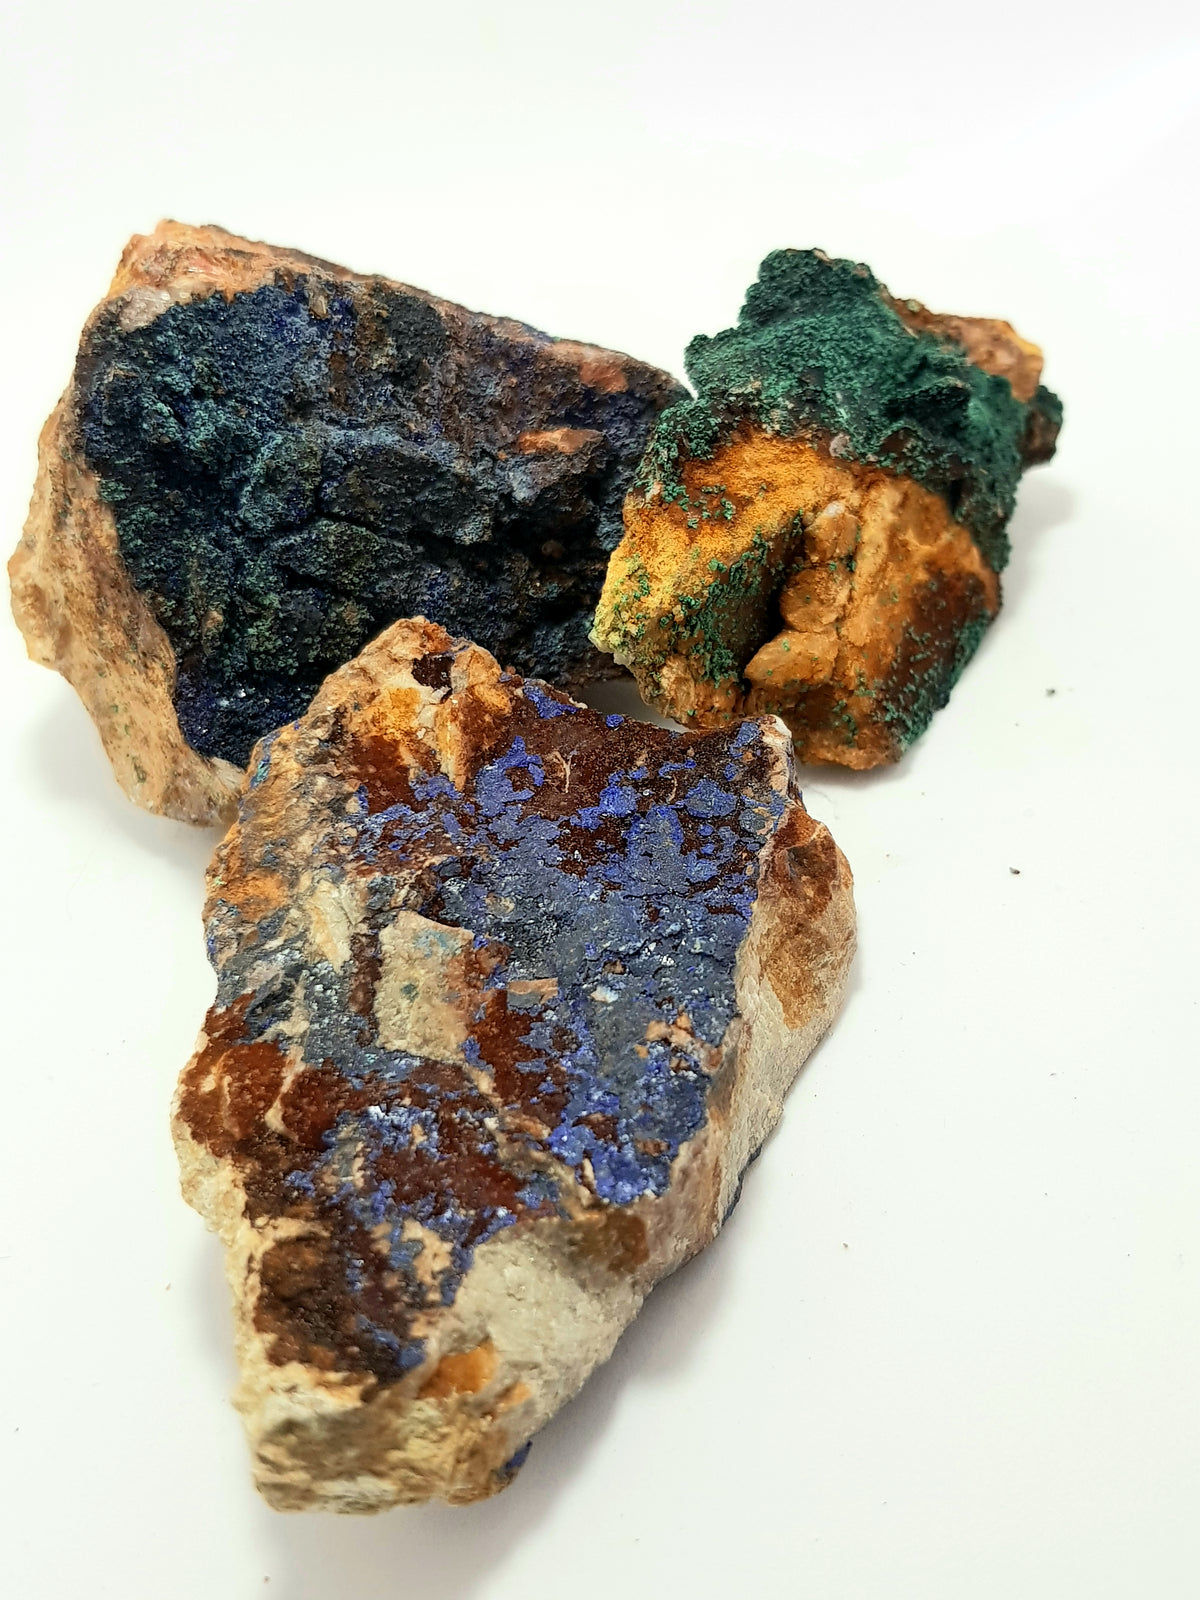 three pieces of raw azurite and malachite on the matrix. vibrant blue and green crystals on a beige carbonate matrix